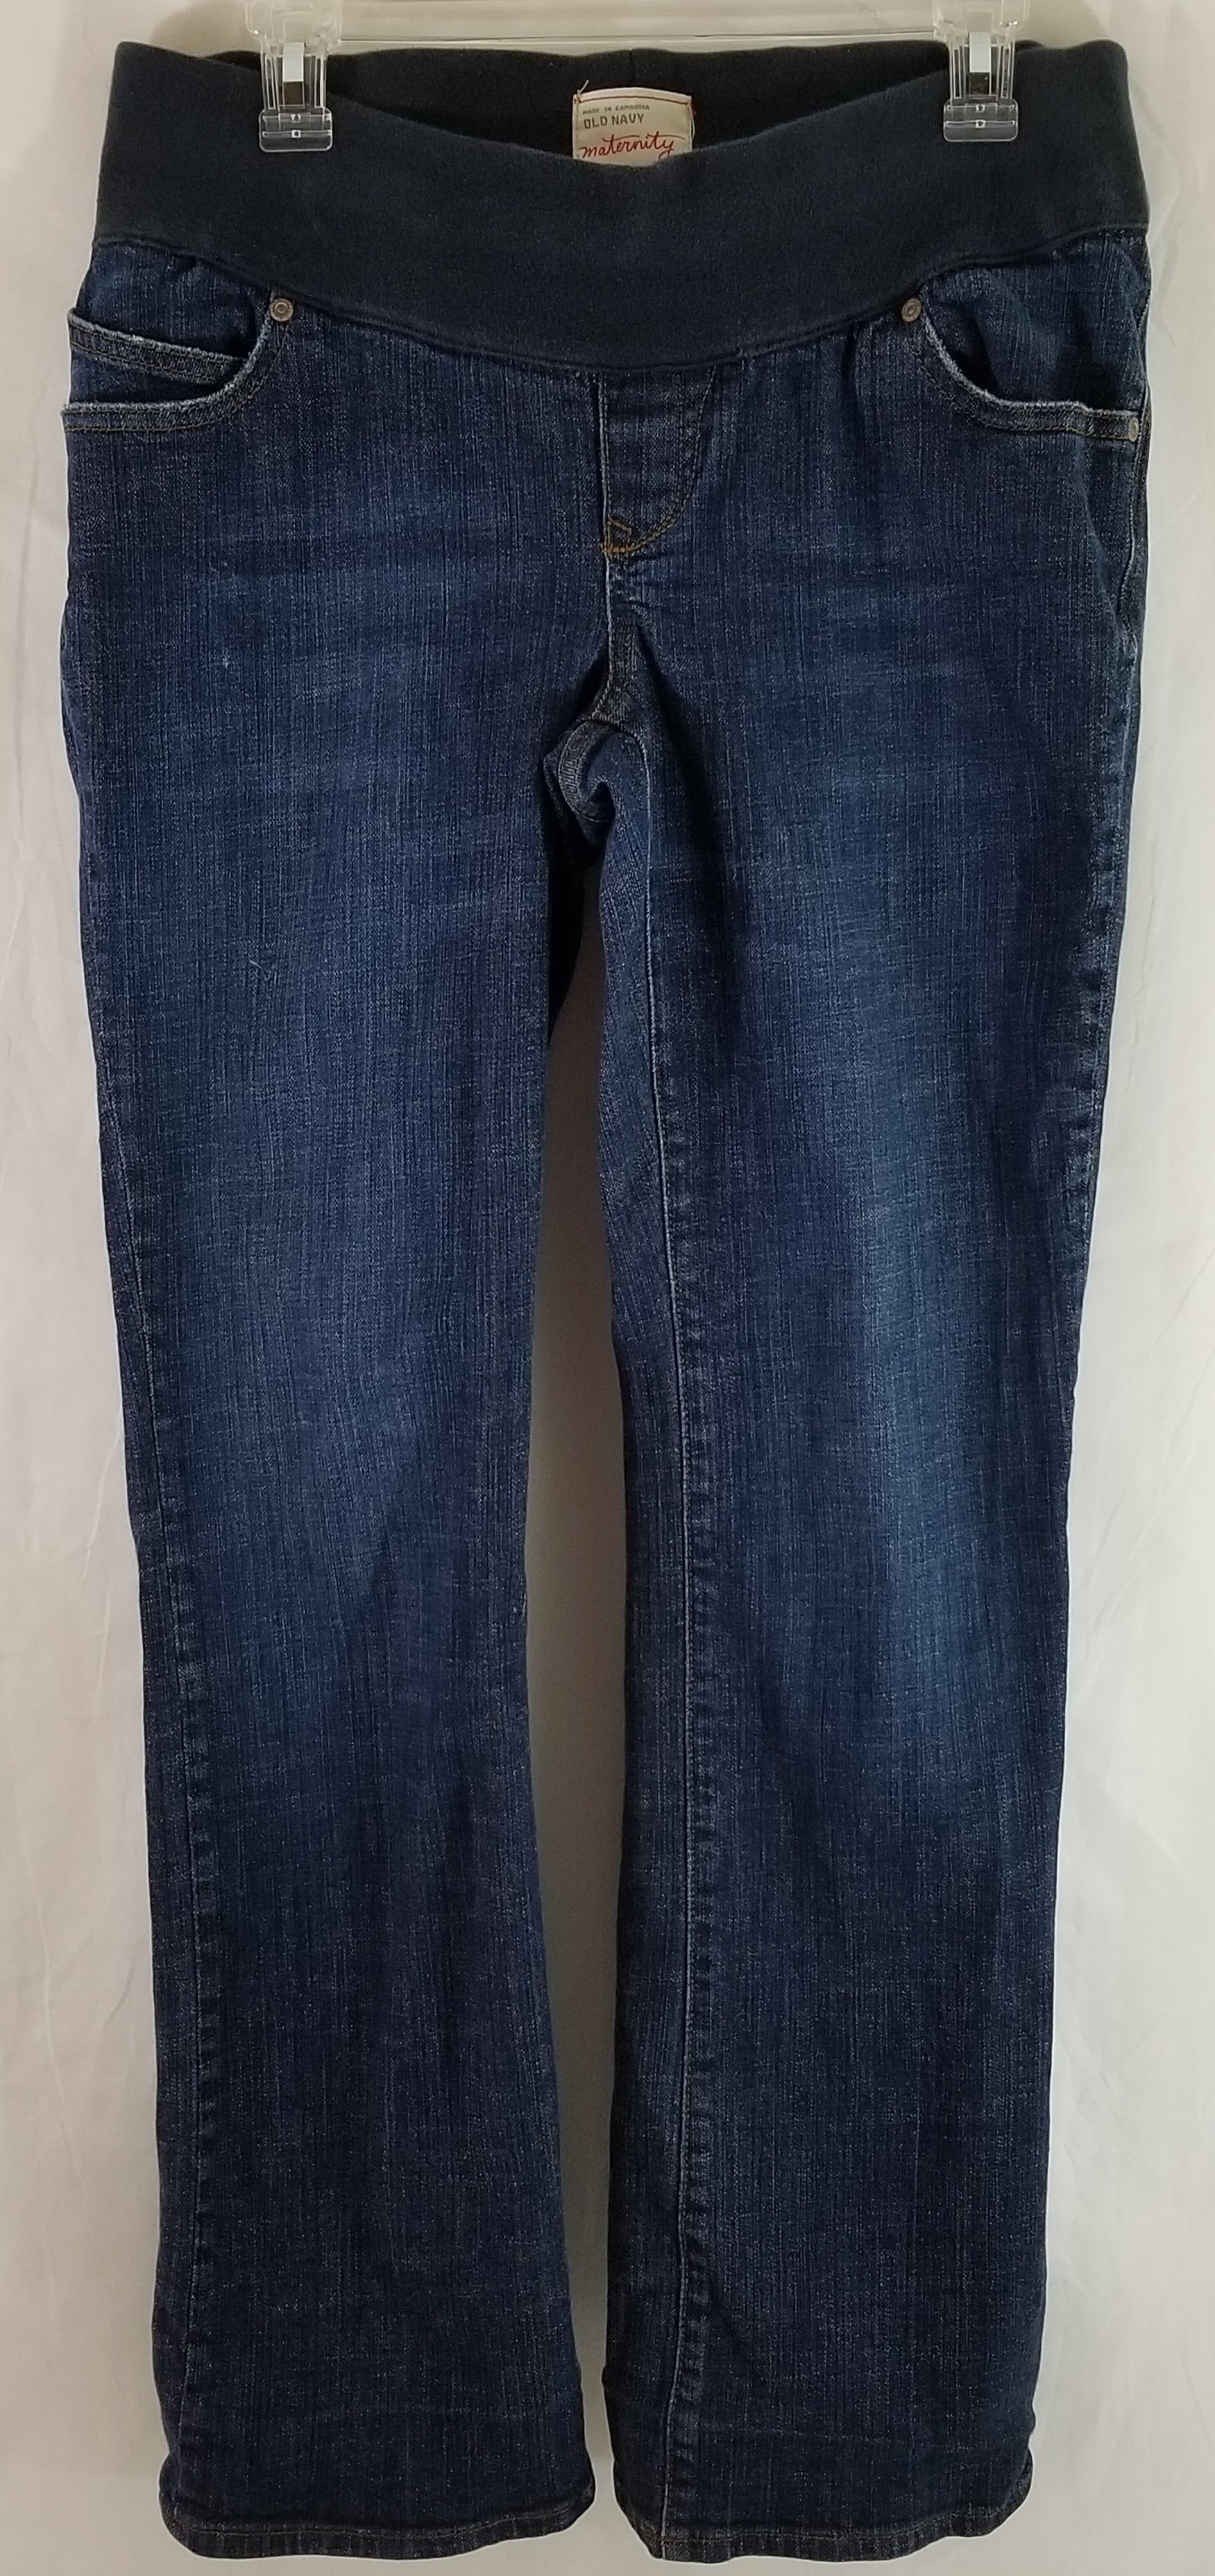 Old Navy Maternity Jeans Maternity Traders